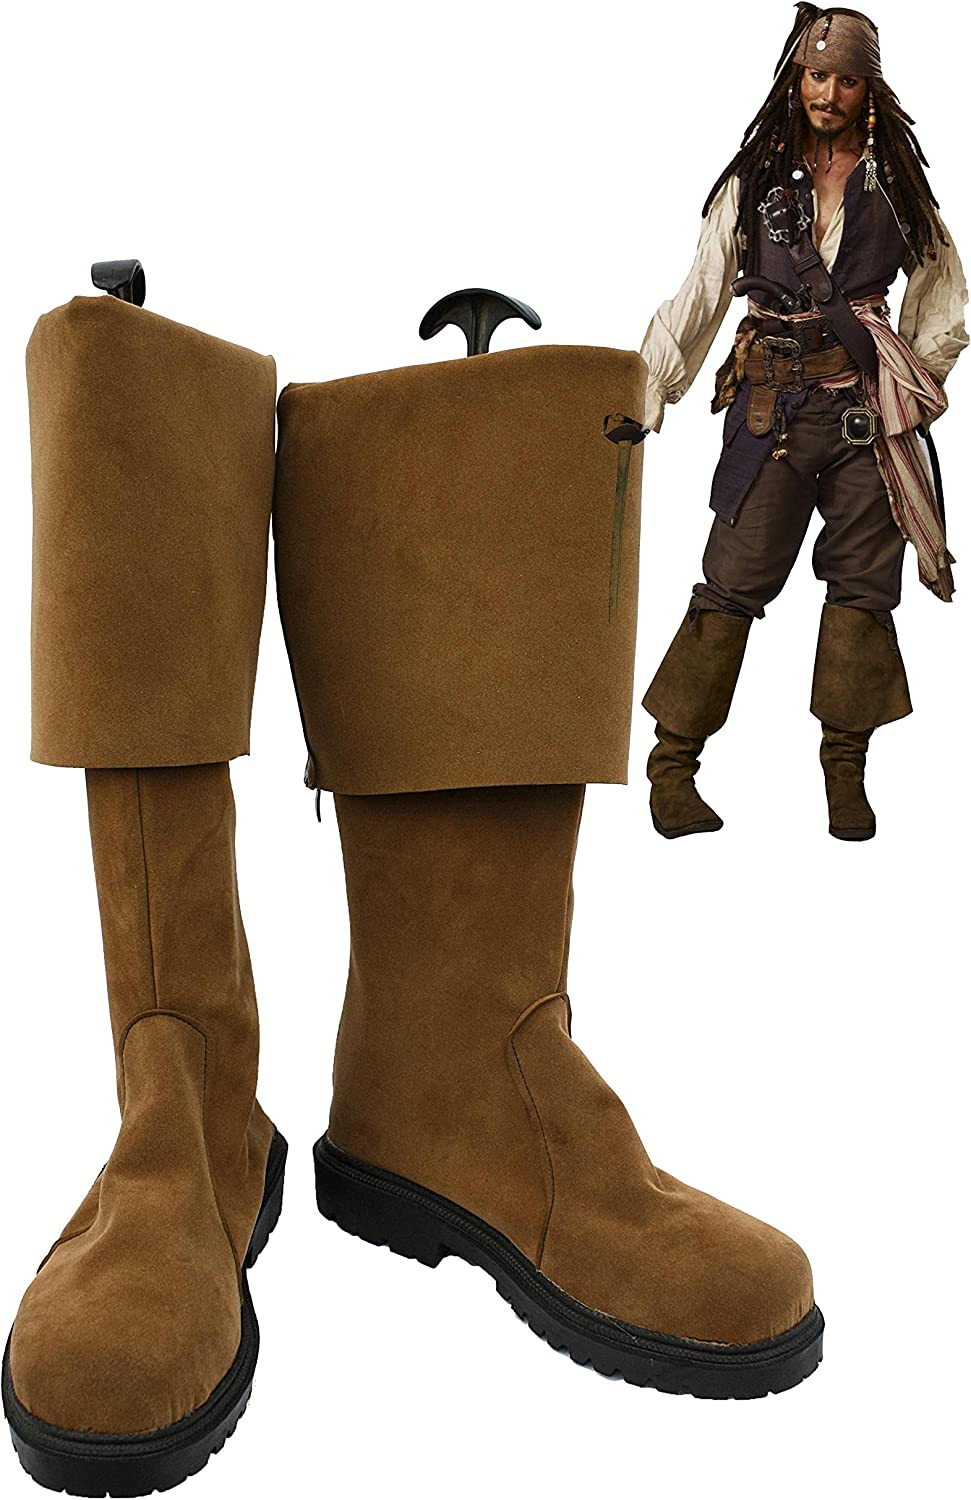 New! Pirates of the Caribbean Jack Sparrow Cosplay Boots Shoes Halloween